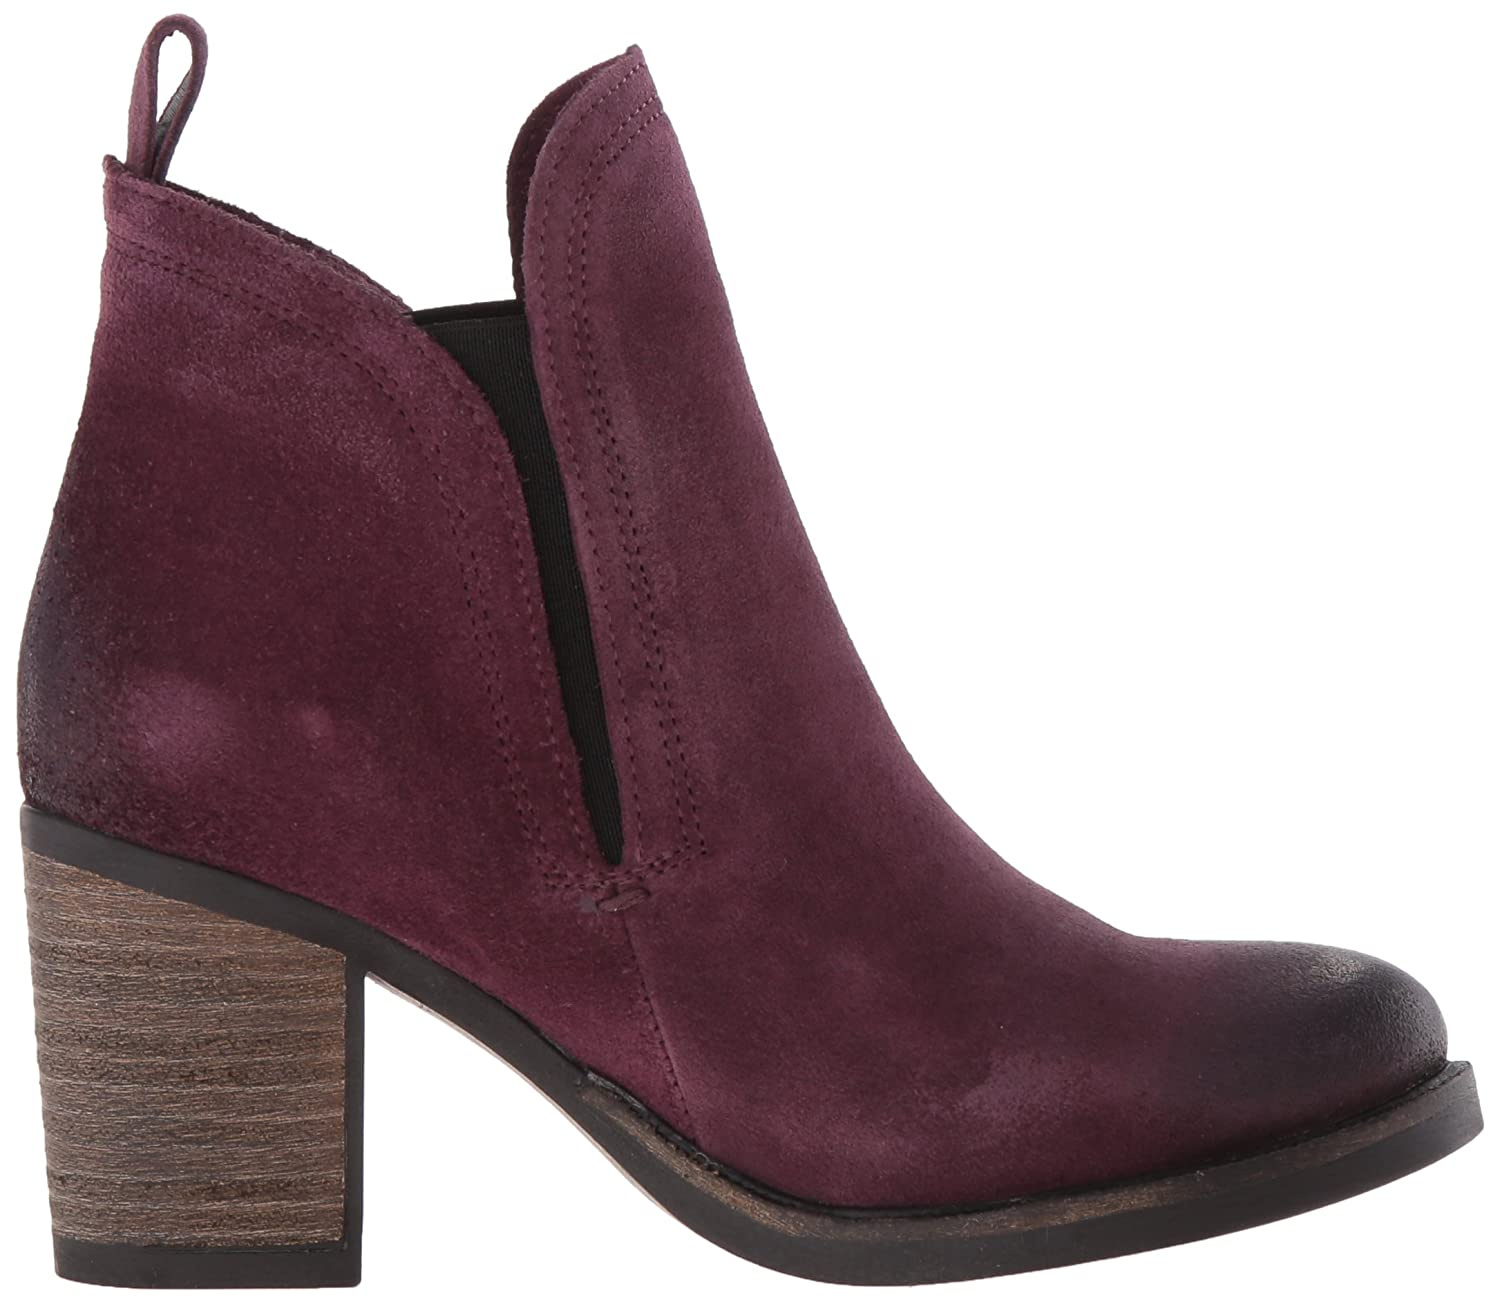 Bos. Boot & Co. Women's Belfield Boot Bos. B01CRJTQ88 41 EU/10 -10.5 M US|Plum Oil Suede deb17f